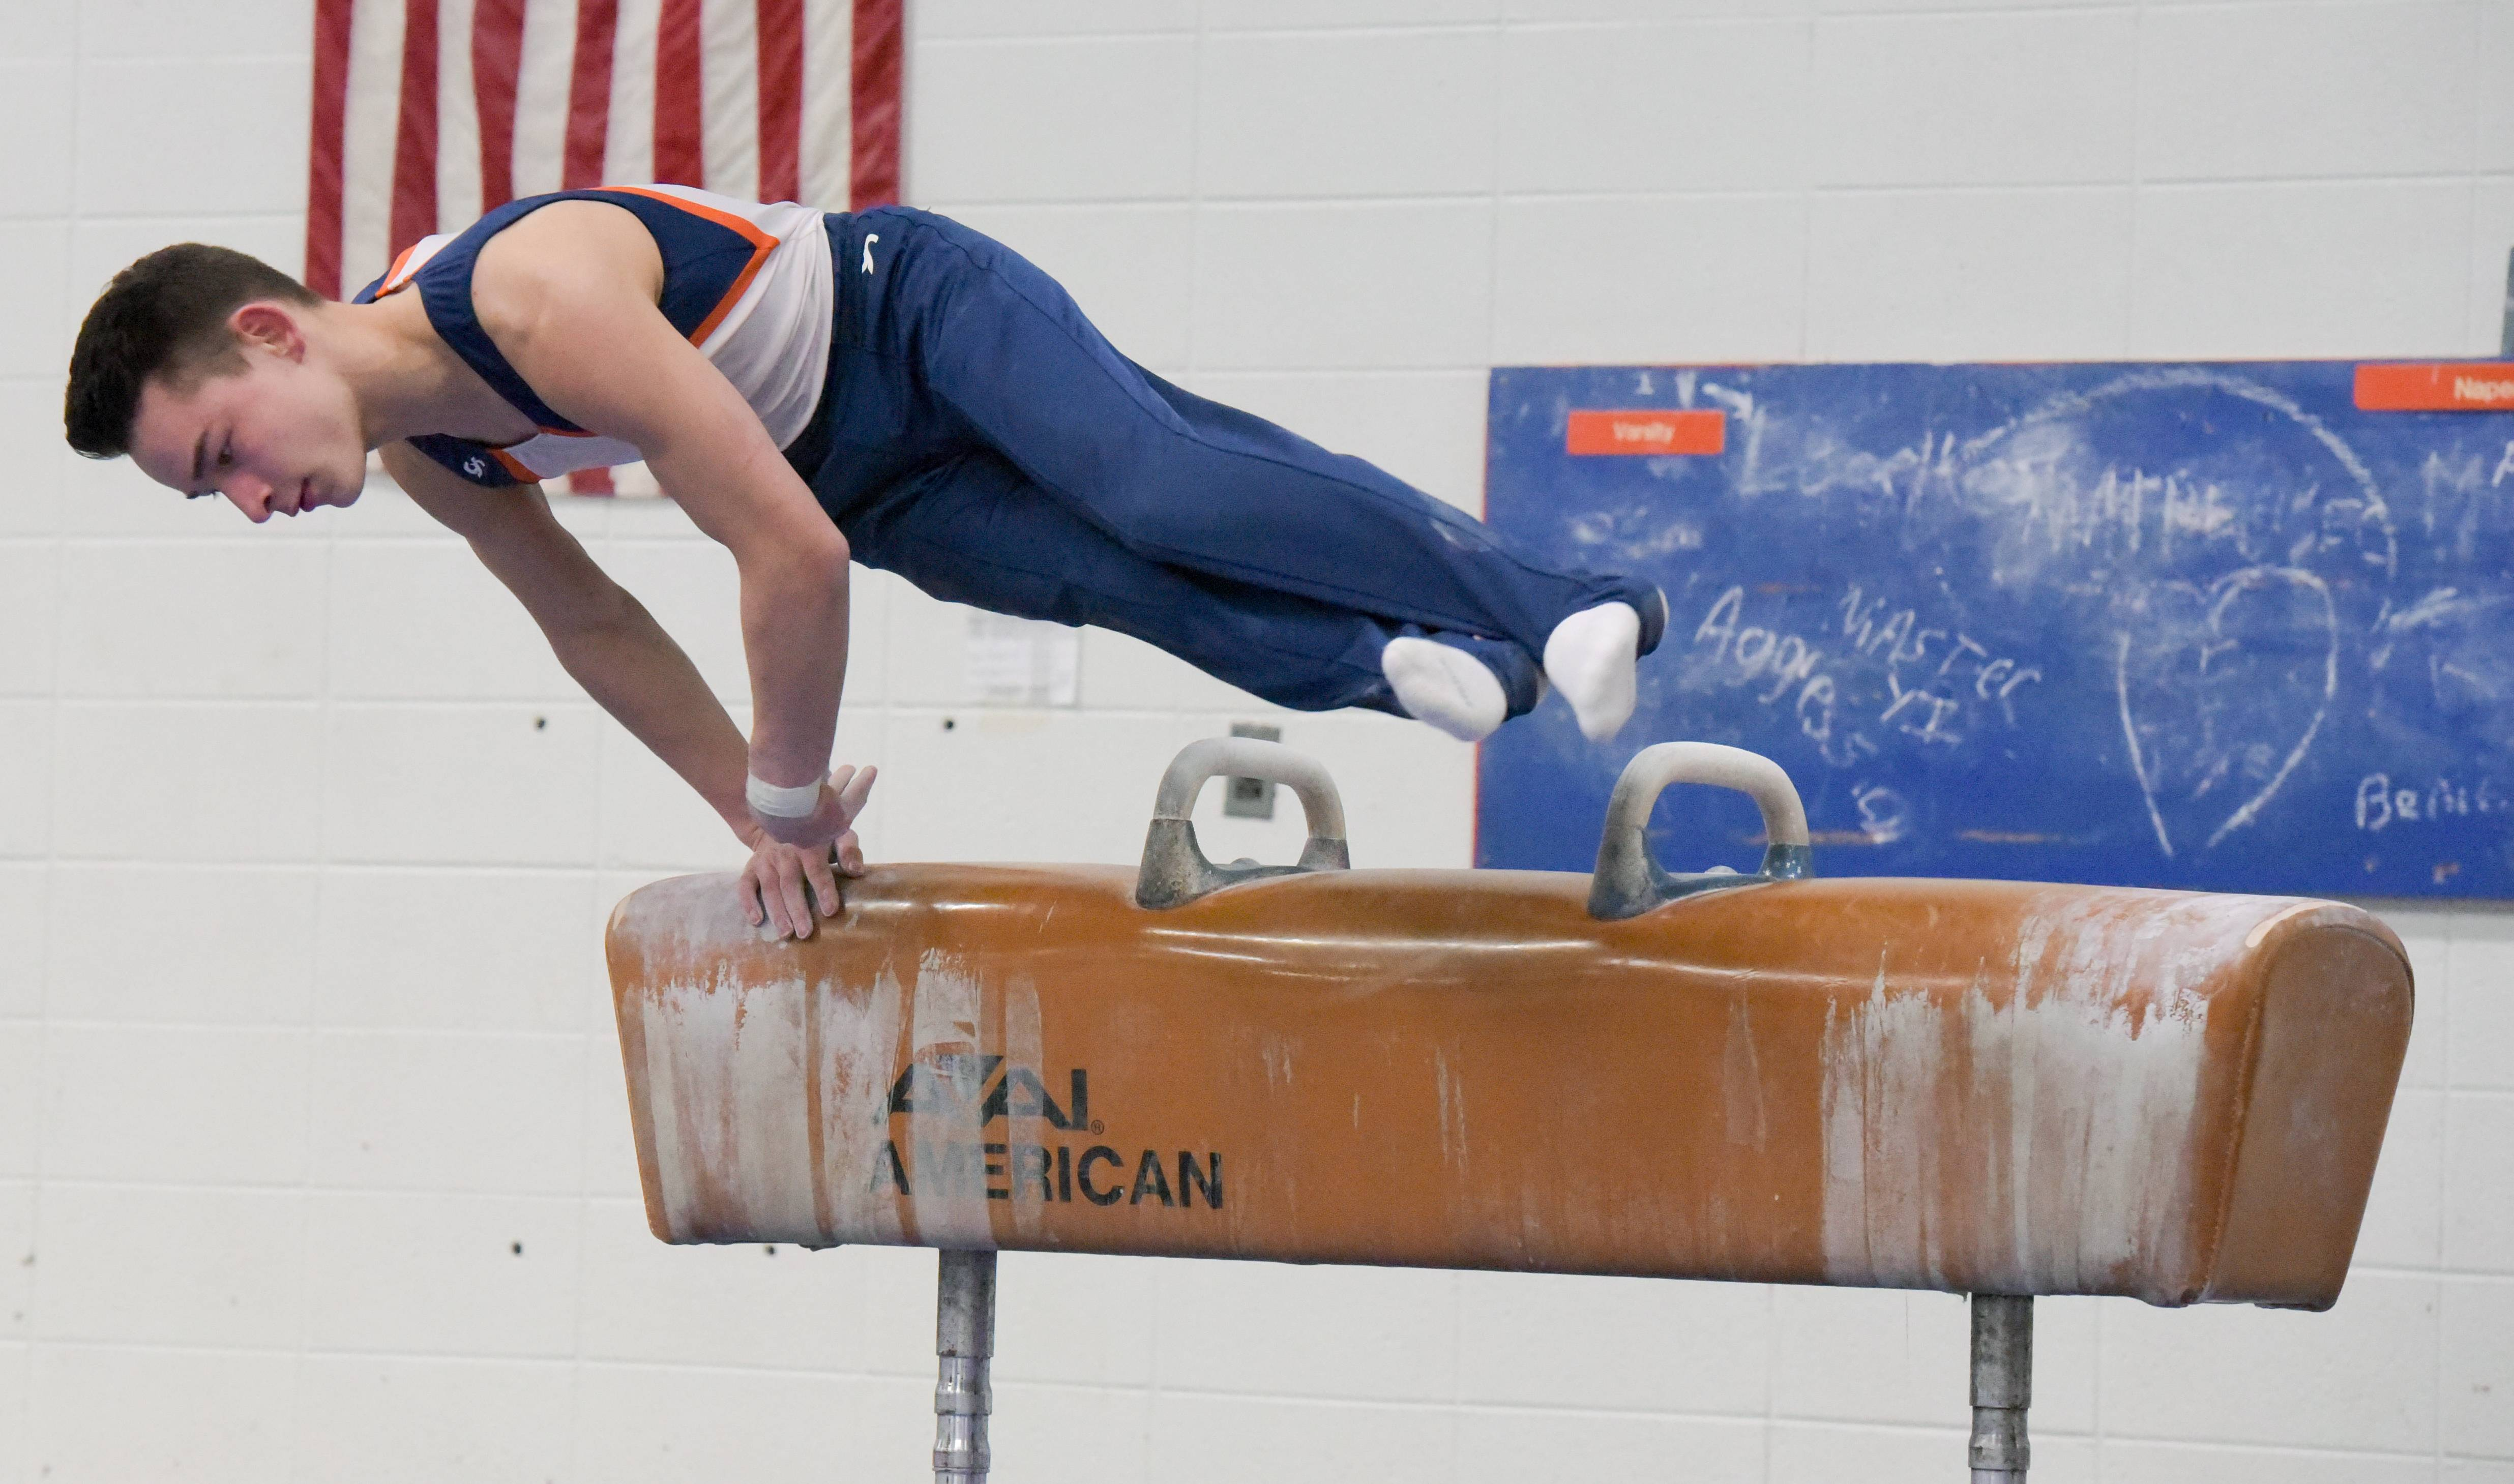 Naperville North's Eric Loid competes on the Pommel Horse against Naperville Central during boys gymnastics on Wednesday, March 14, 2018.